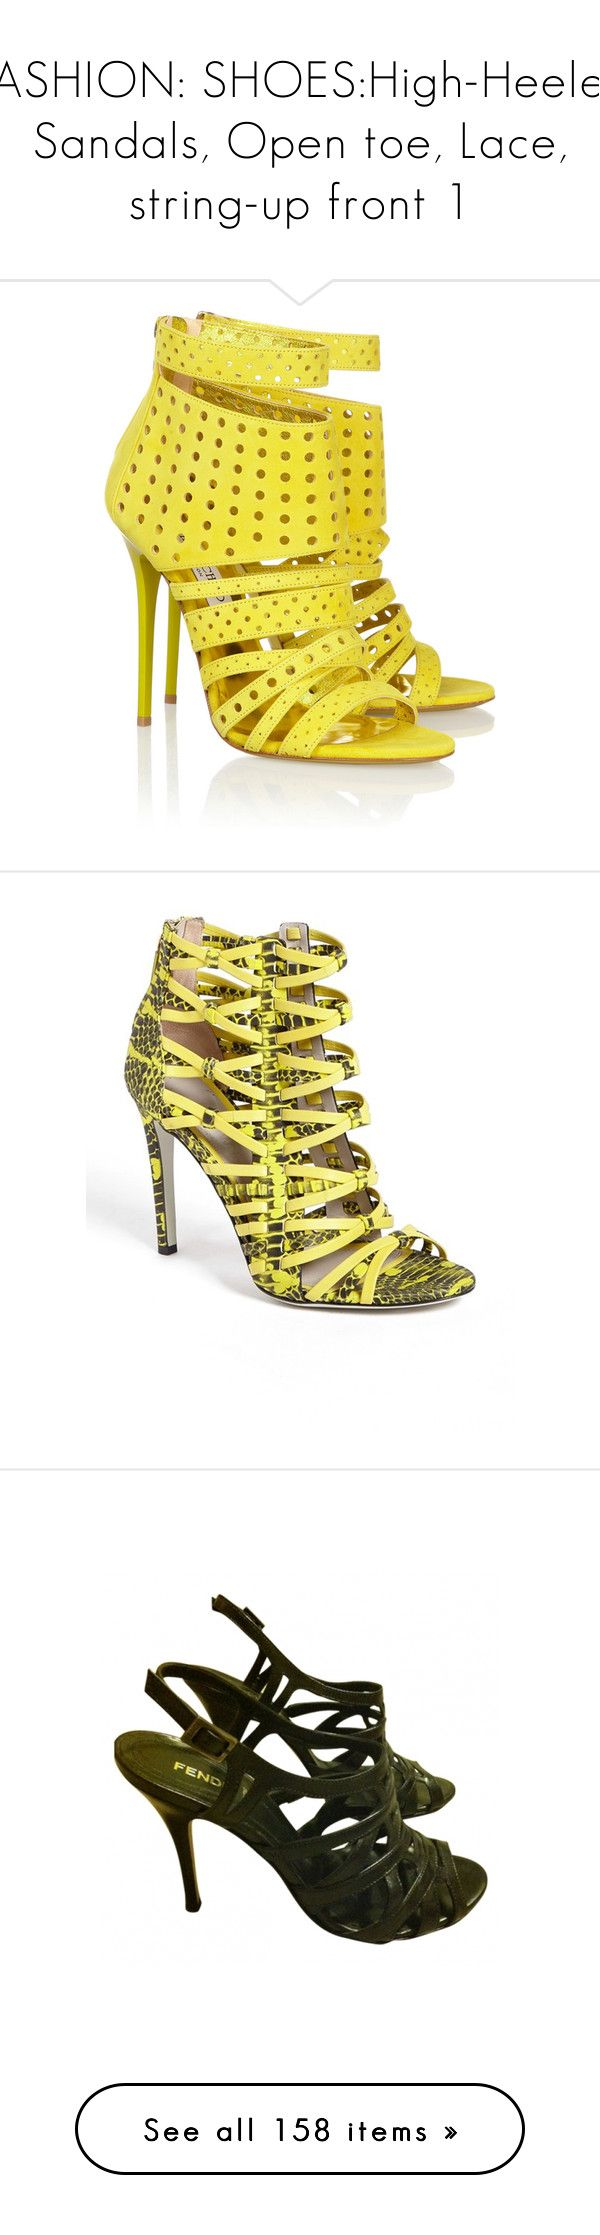 """FASHION: SHOES:High-Heeled Sandals, Open toe, Lace, string-up front 1"" by eva-malecka ❤ liked on Polyvore featuring shoes, sandals, heels, yellow, jimmy choo, yellow heel shoes, jimmy choo sandals, yellow high heel sandals, zipper shoes and jimmy choo shoes"